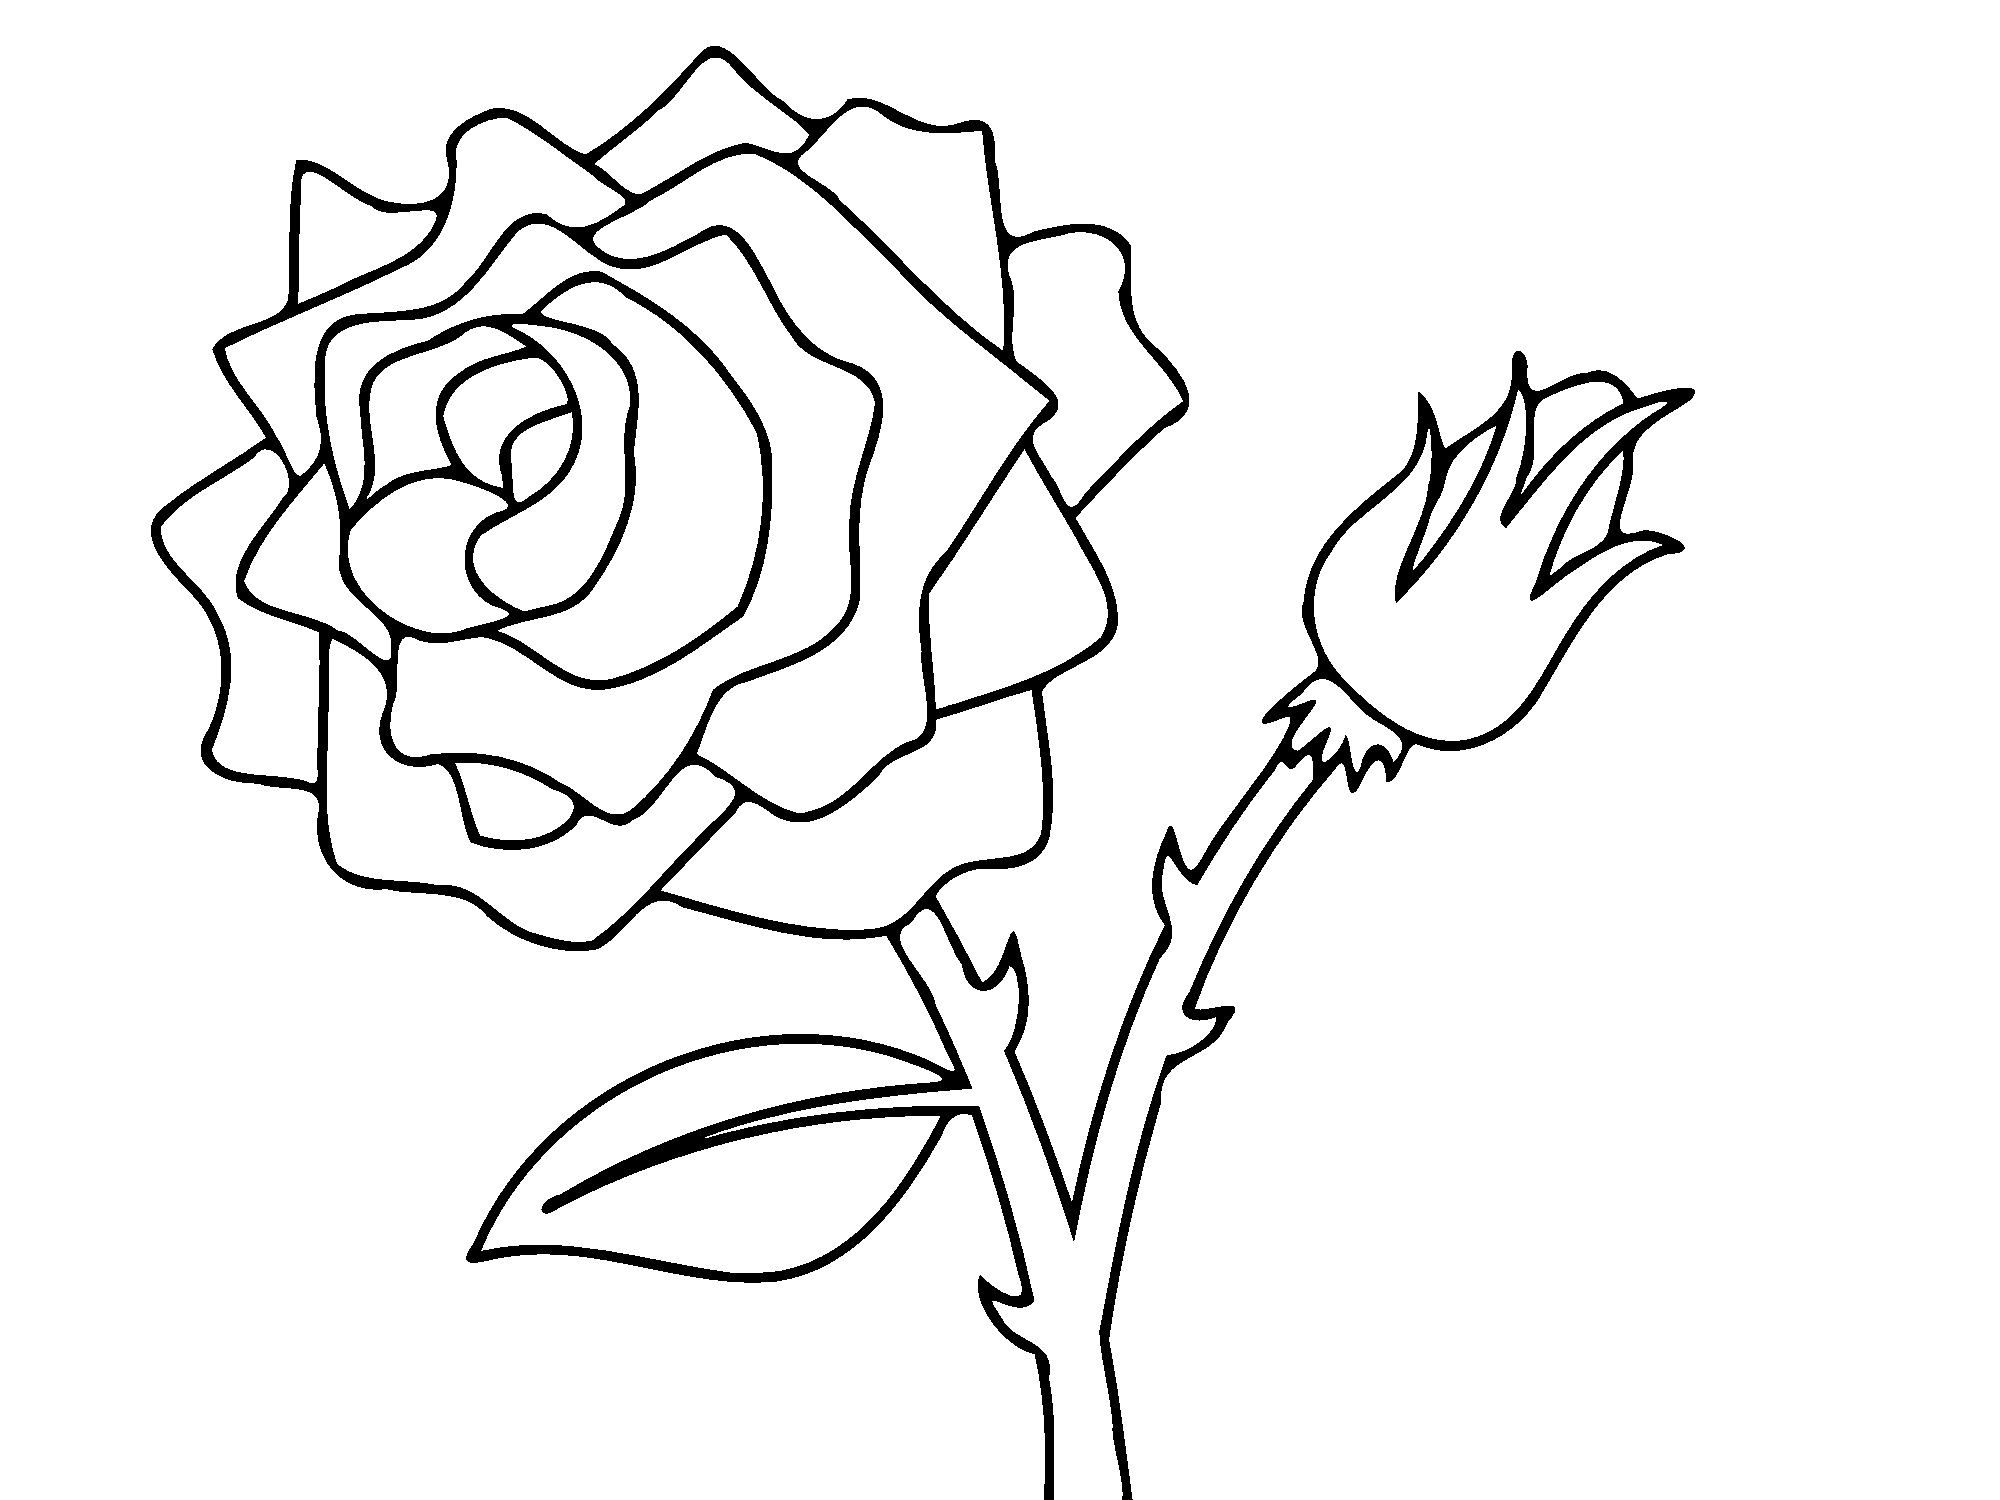 free flower coloring pages - drawings of flowers coloring games